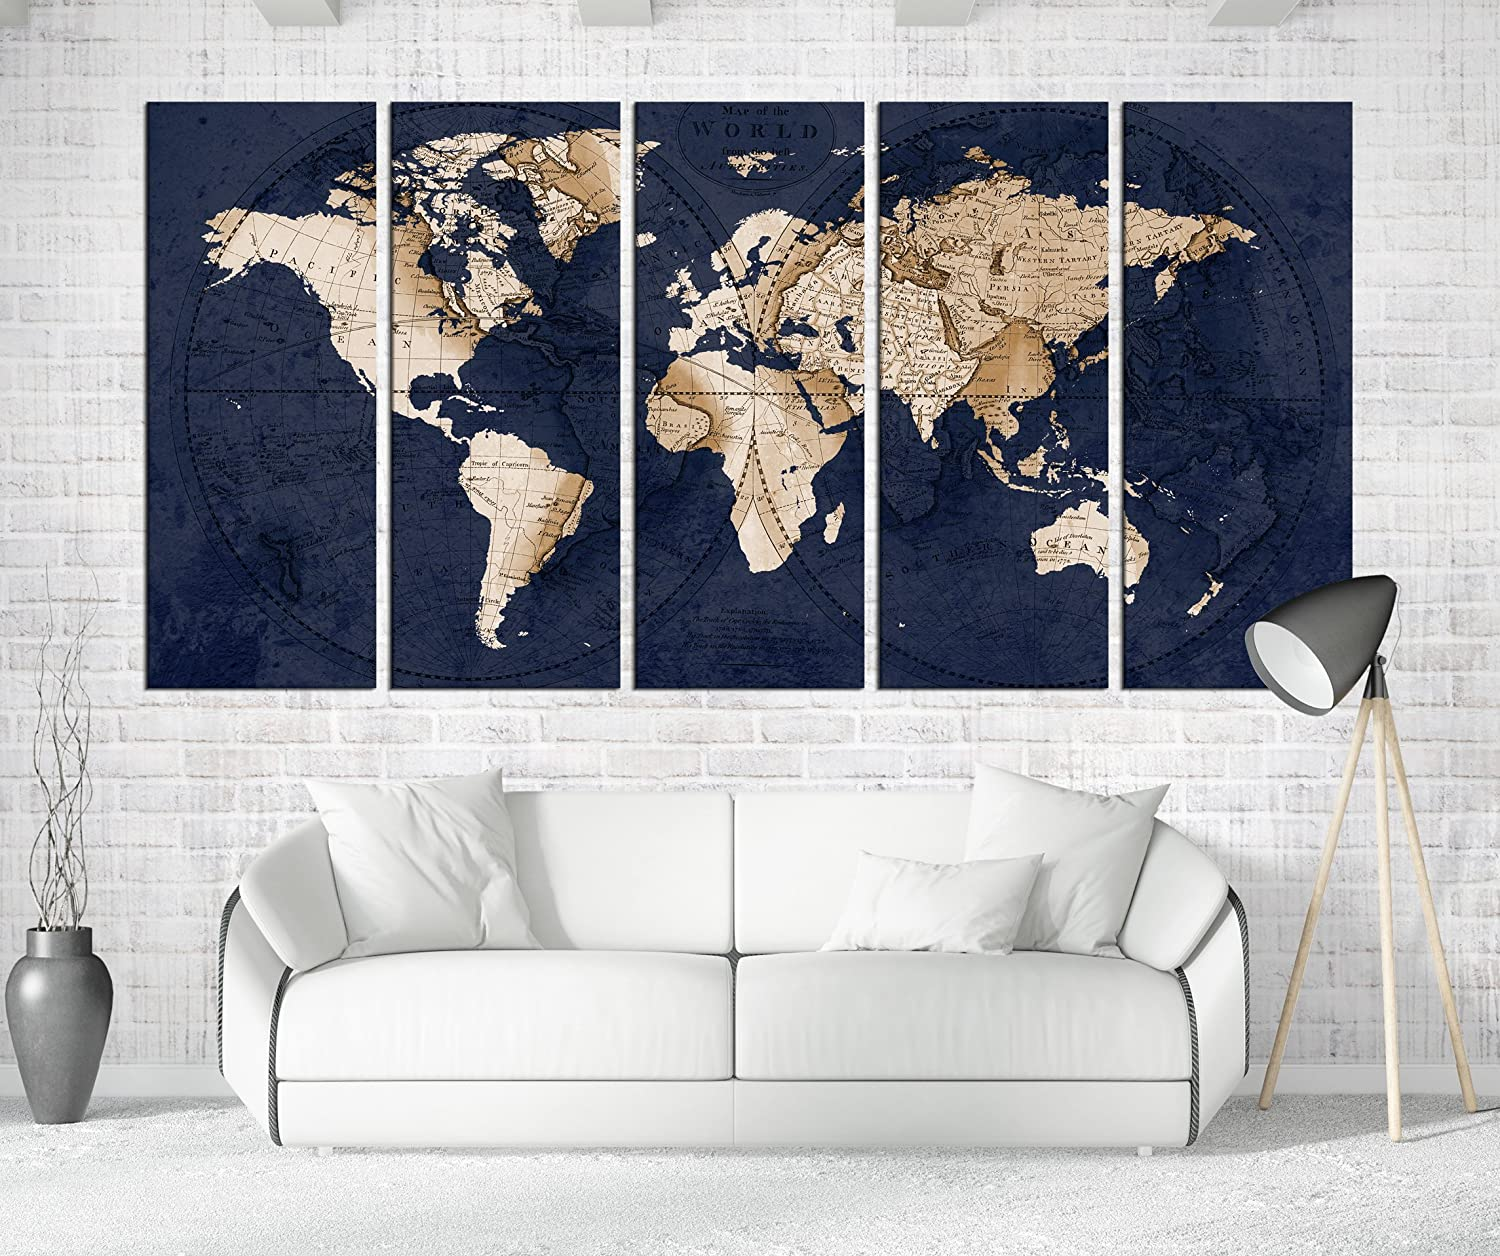 Amazon com navy blue world map canvas art large wall art print framed world map wall big size for living room 5 pieces wall art quotes 774 handmade